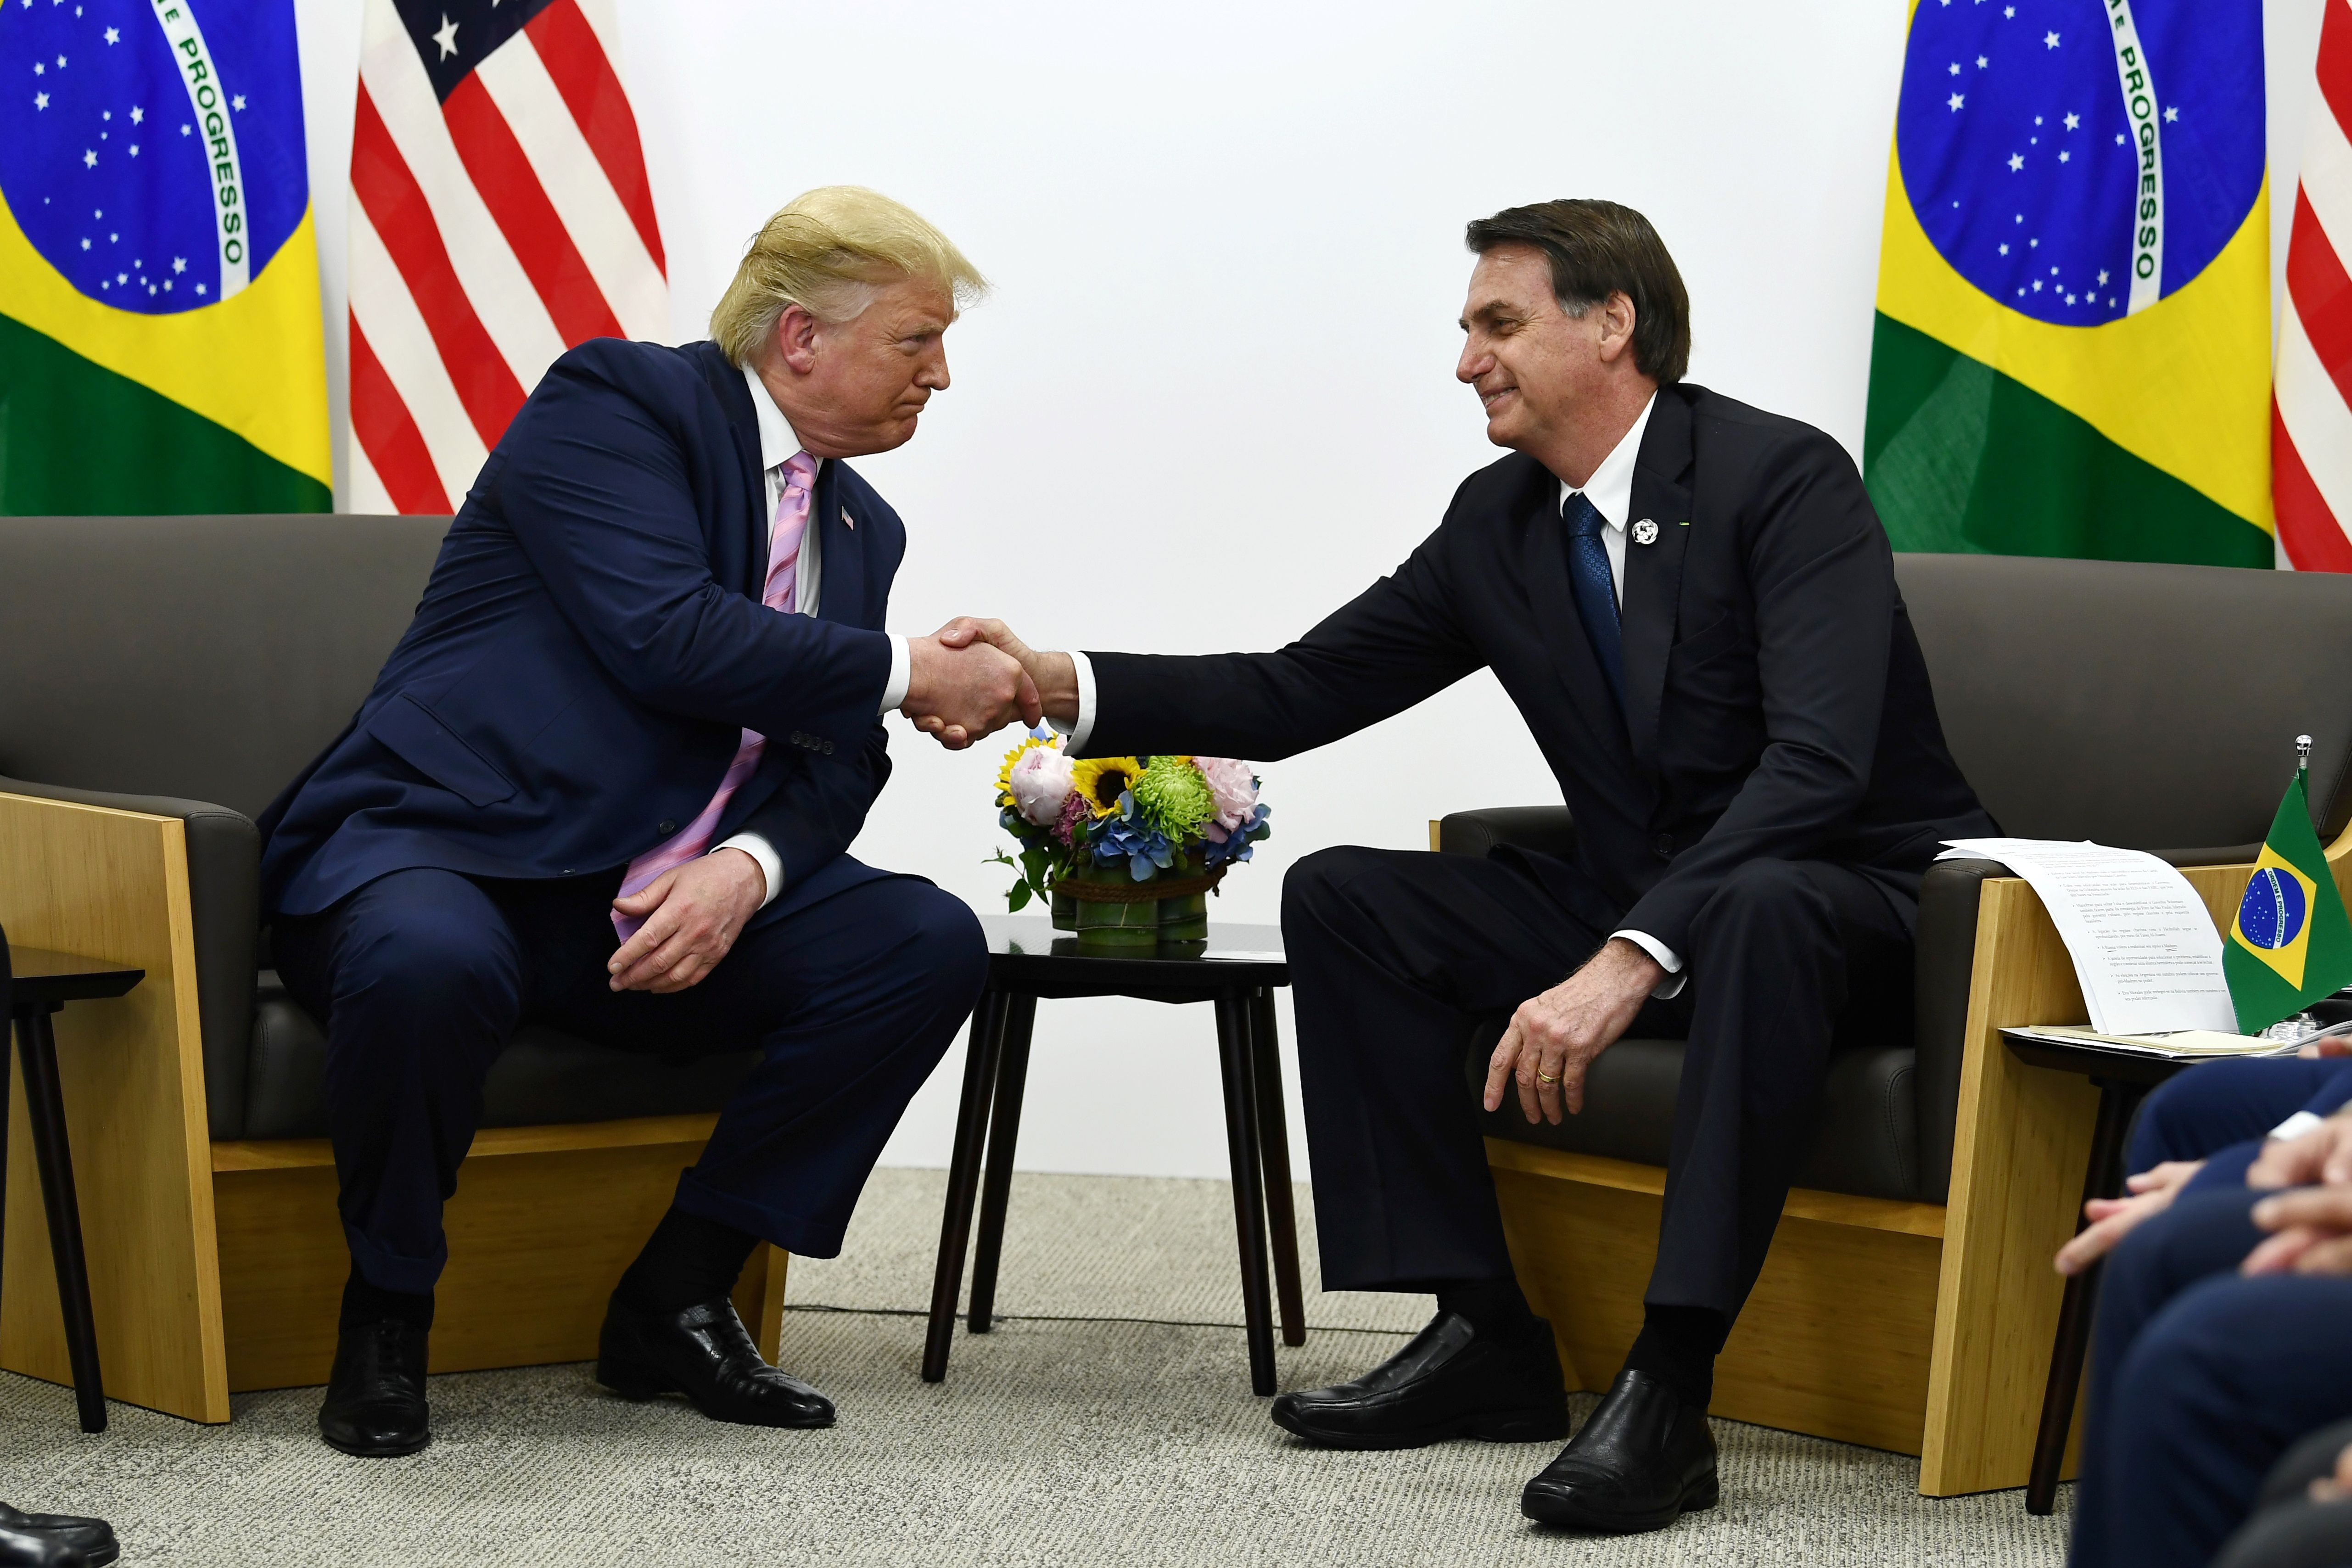 Brazil's President Jair Bolsonaro meets with US President Donald Trump during a bilateral meeting on the sidelines of the G20 Summit in Osaka on June 28.